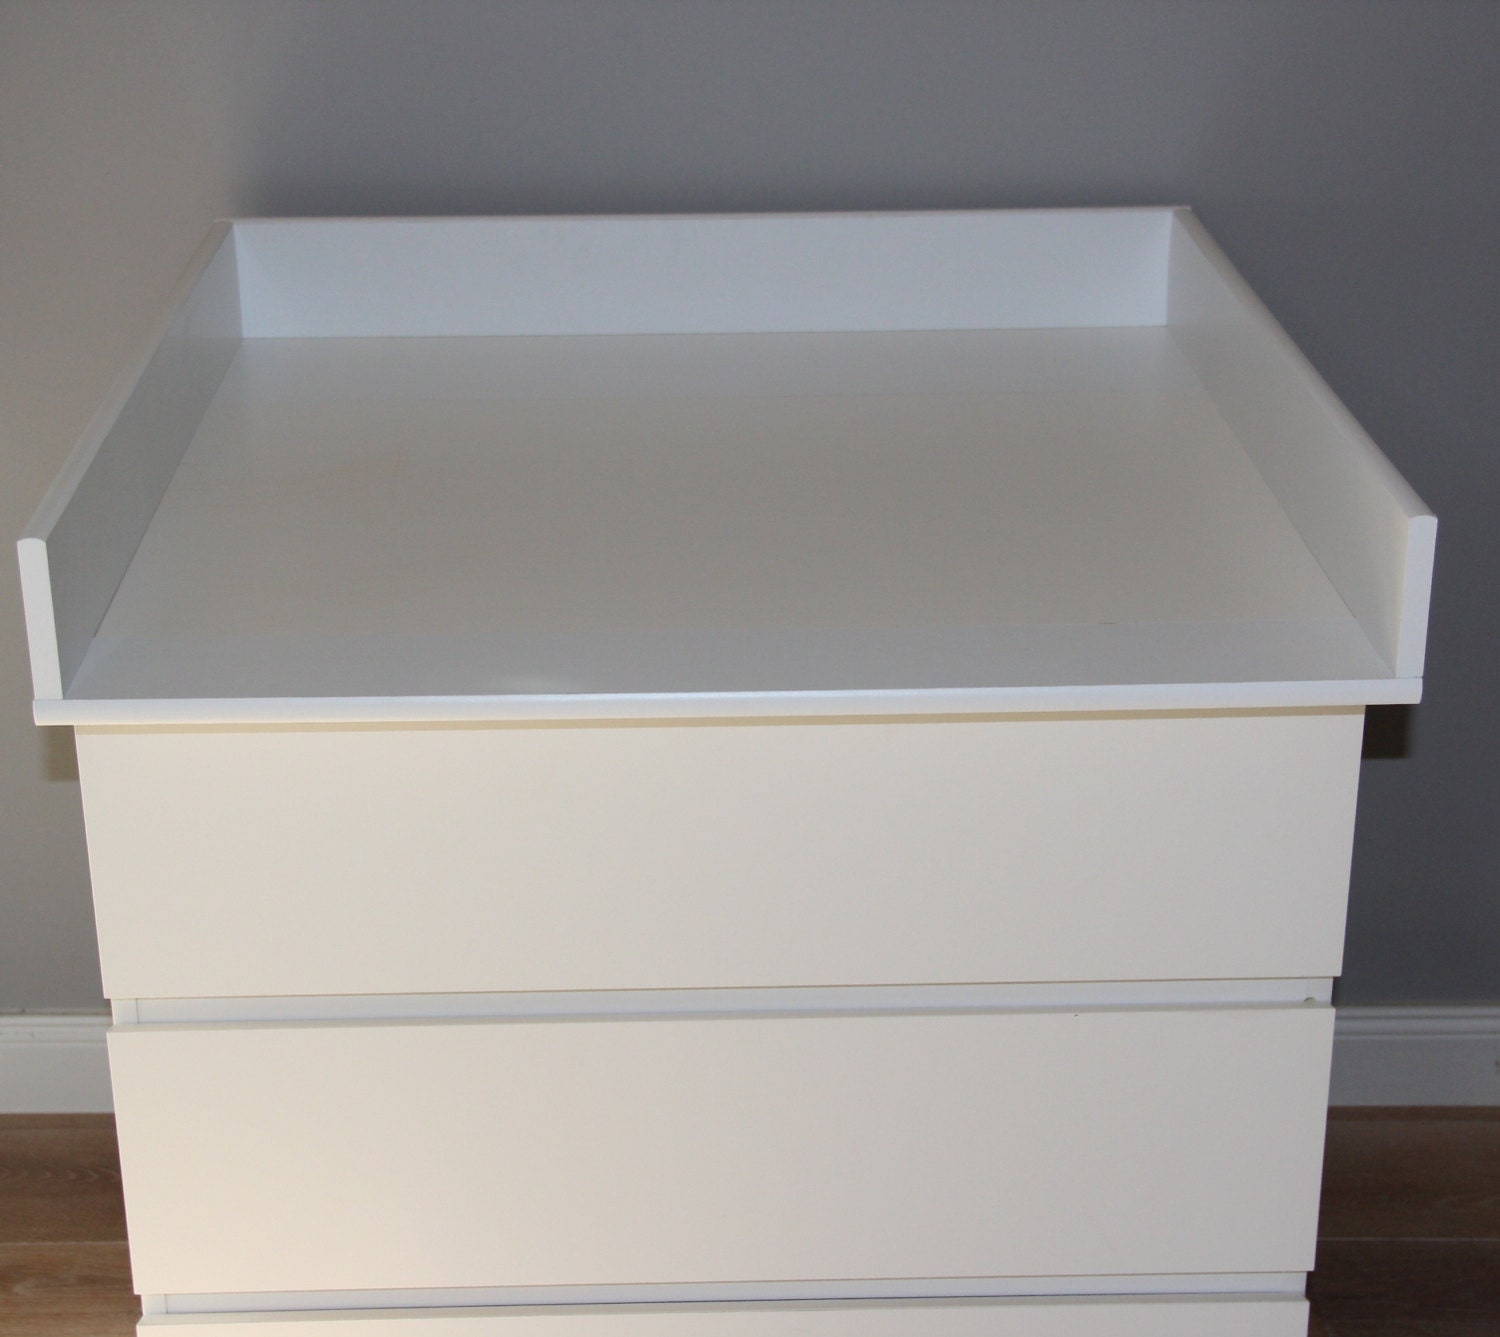 Ikea Glass Cabinet Fabrikor ~ Round edges Changing table for IKEA Malm dresser by PuckDaddy88